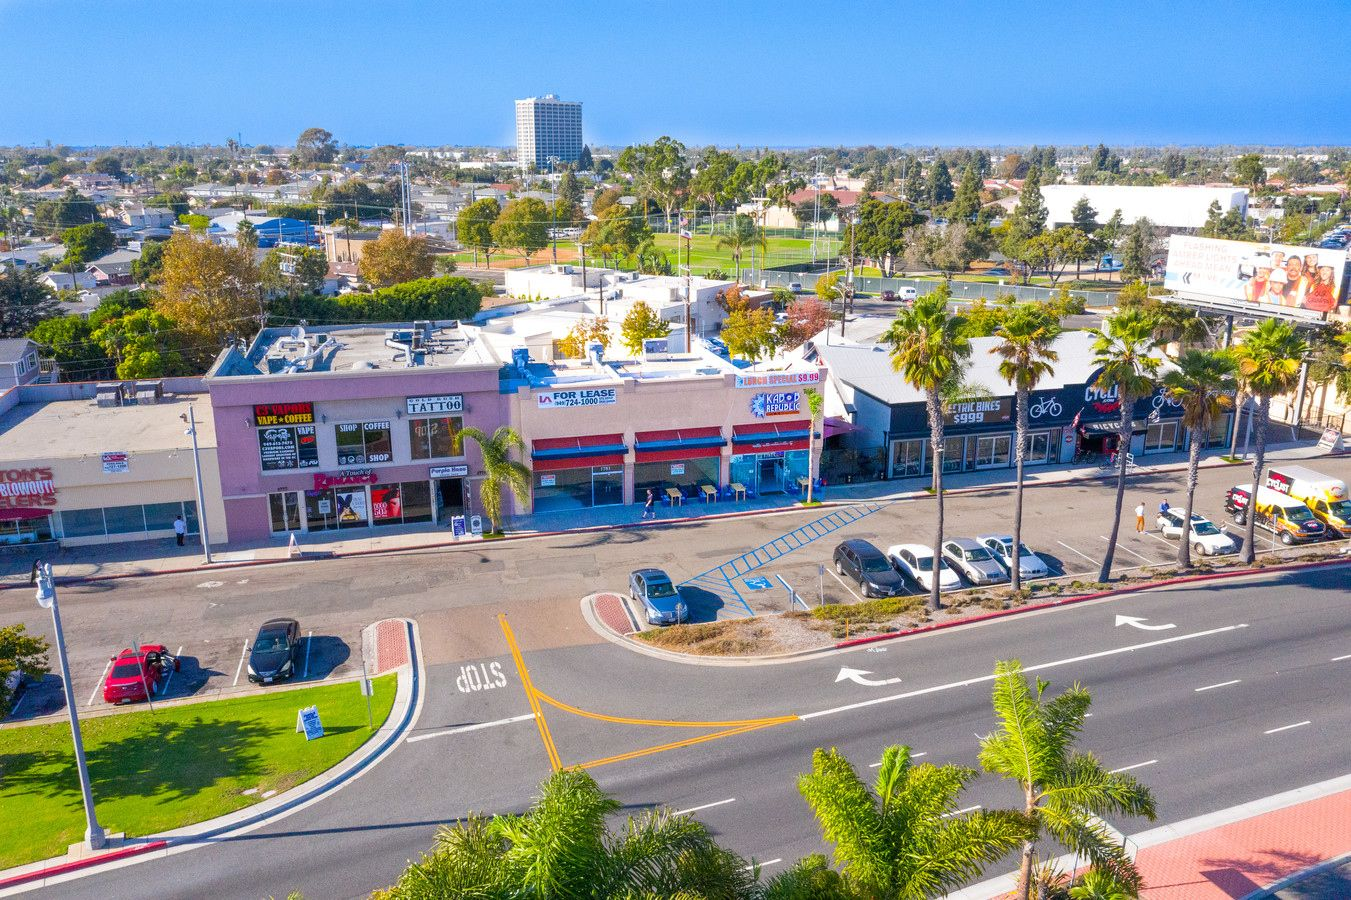 1781 Newport Blvd 5 980 Sf Retail Building Offered At 4 350 000 In Costa Mesa Ca Commercial In 2020 Commercial Real Estate Building Design Real Estate